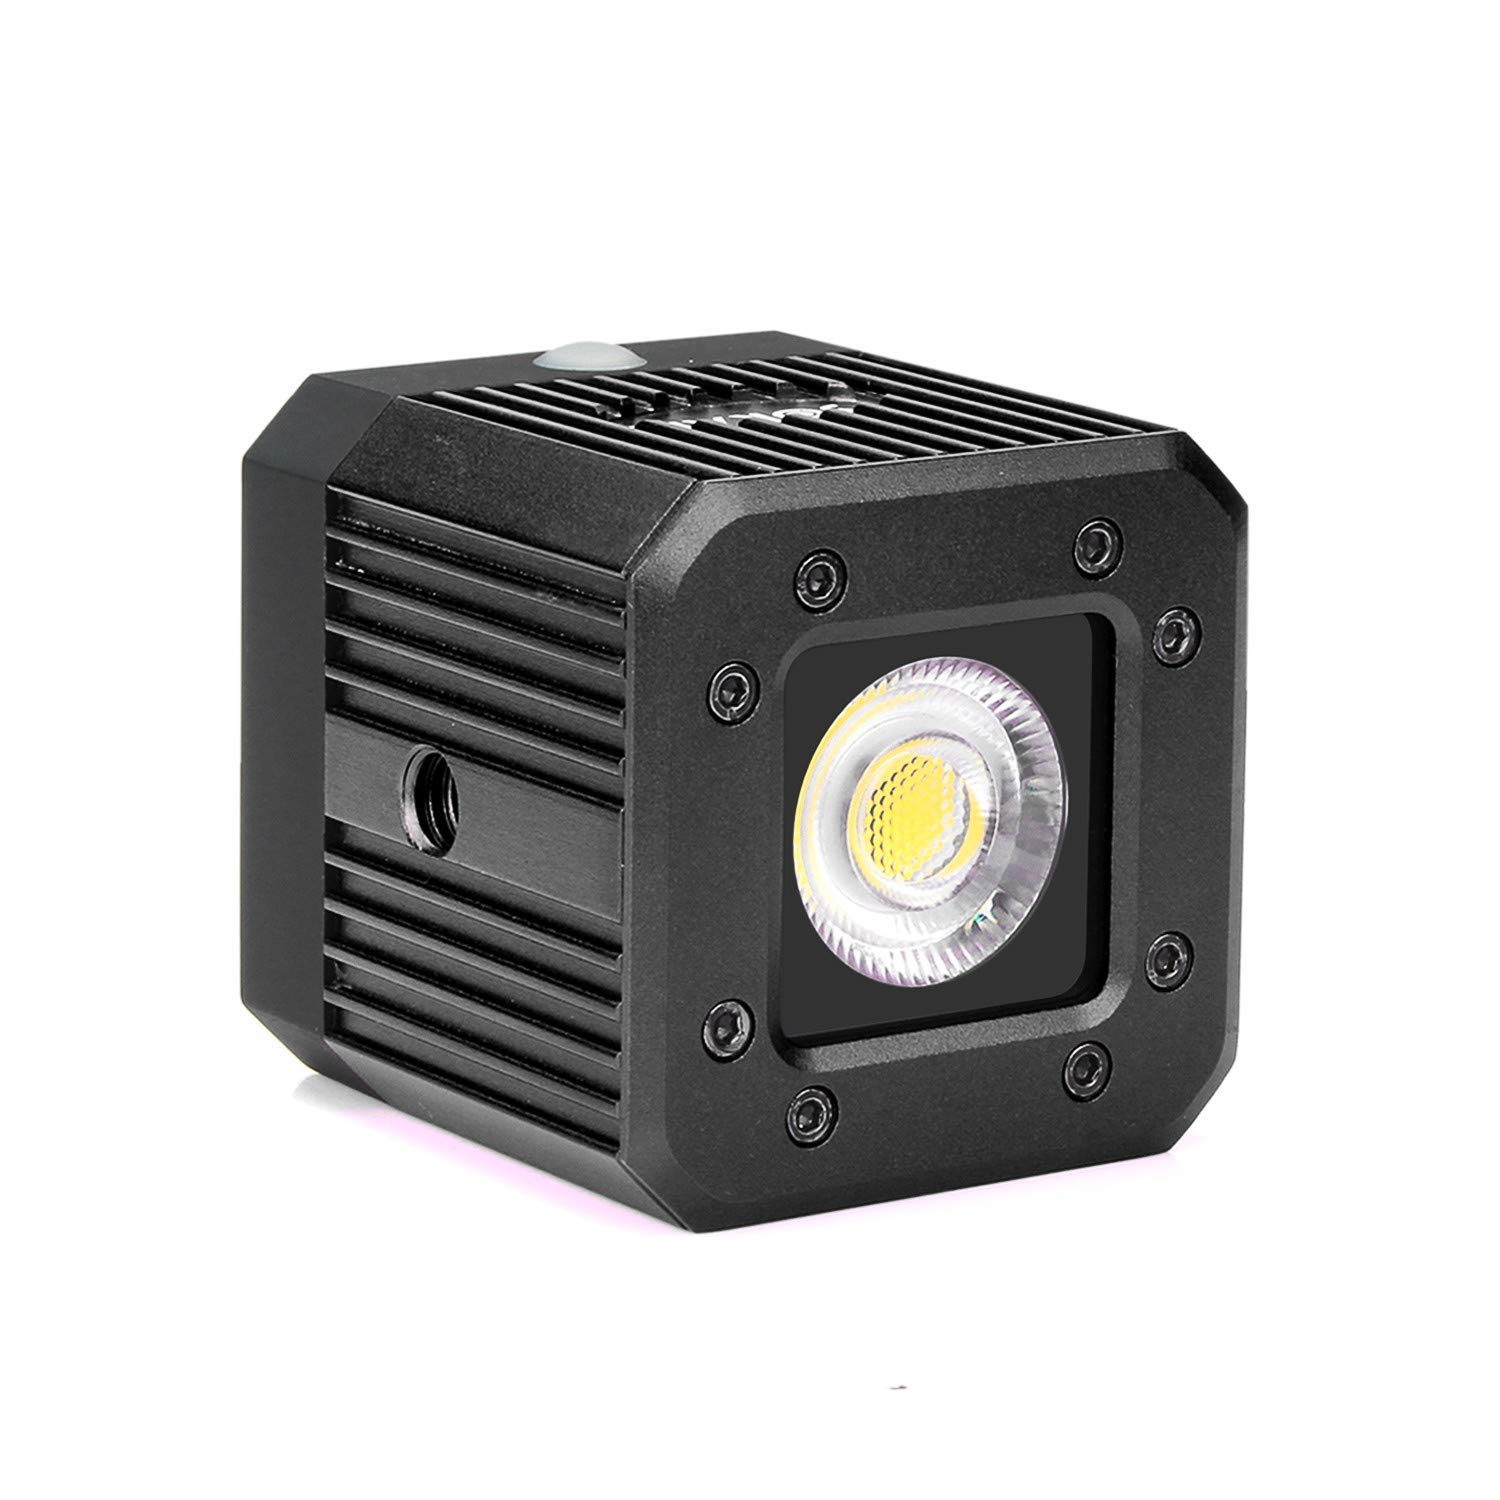 Sokani X1 8W 200LUX/1M Mini Waterproof LED Video Light Aluminum Lighting for Smartphone Camera Drone GoPro iPhone Samsung Sony Nikon Canon DJI Zhiyun Feiyu Moza - Black